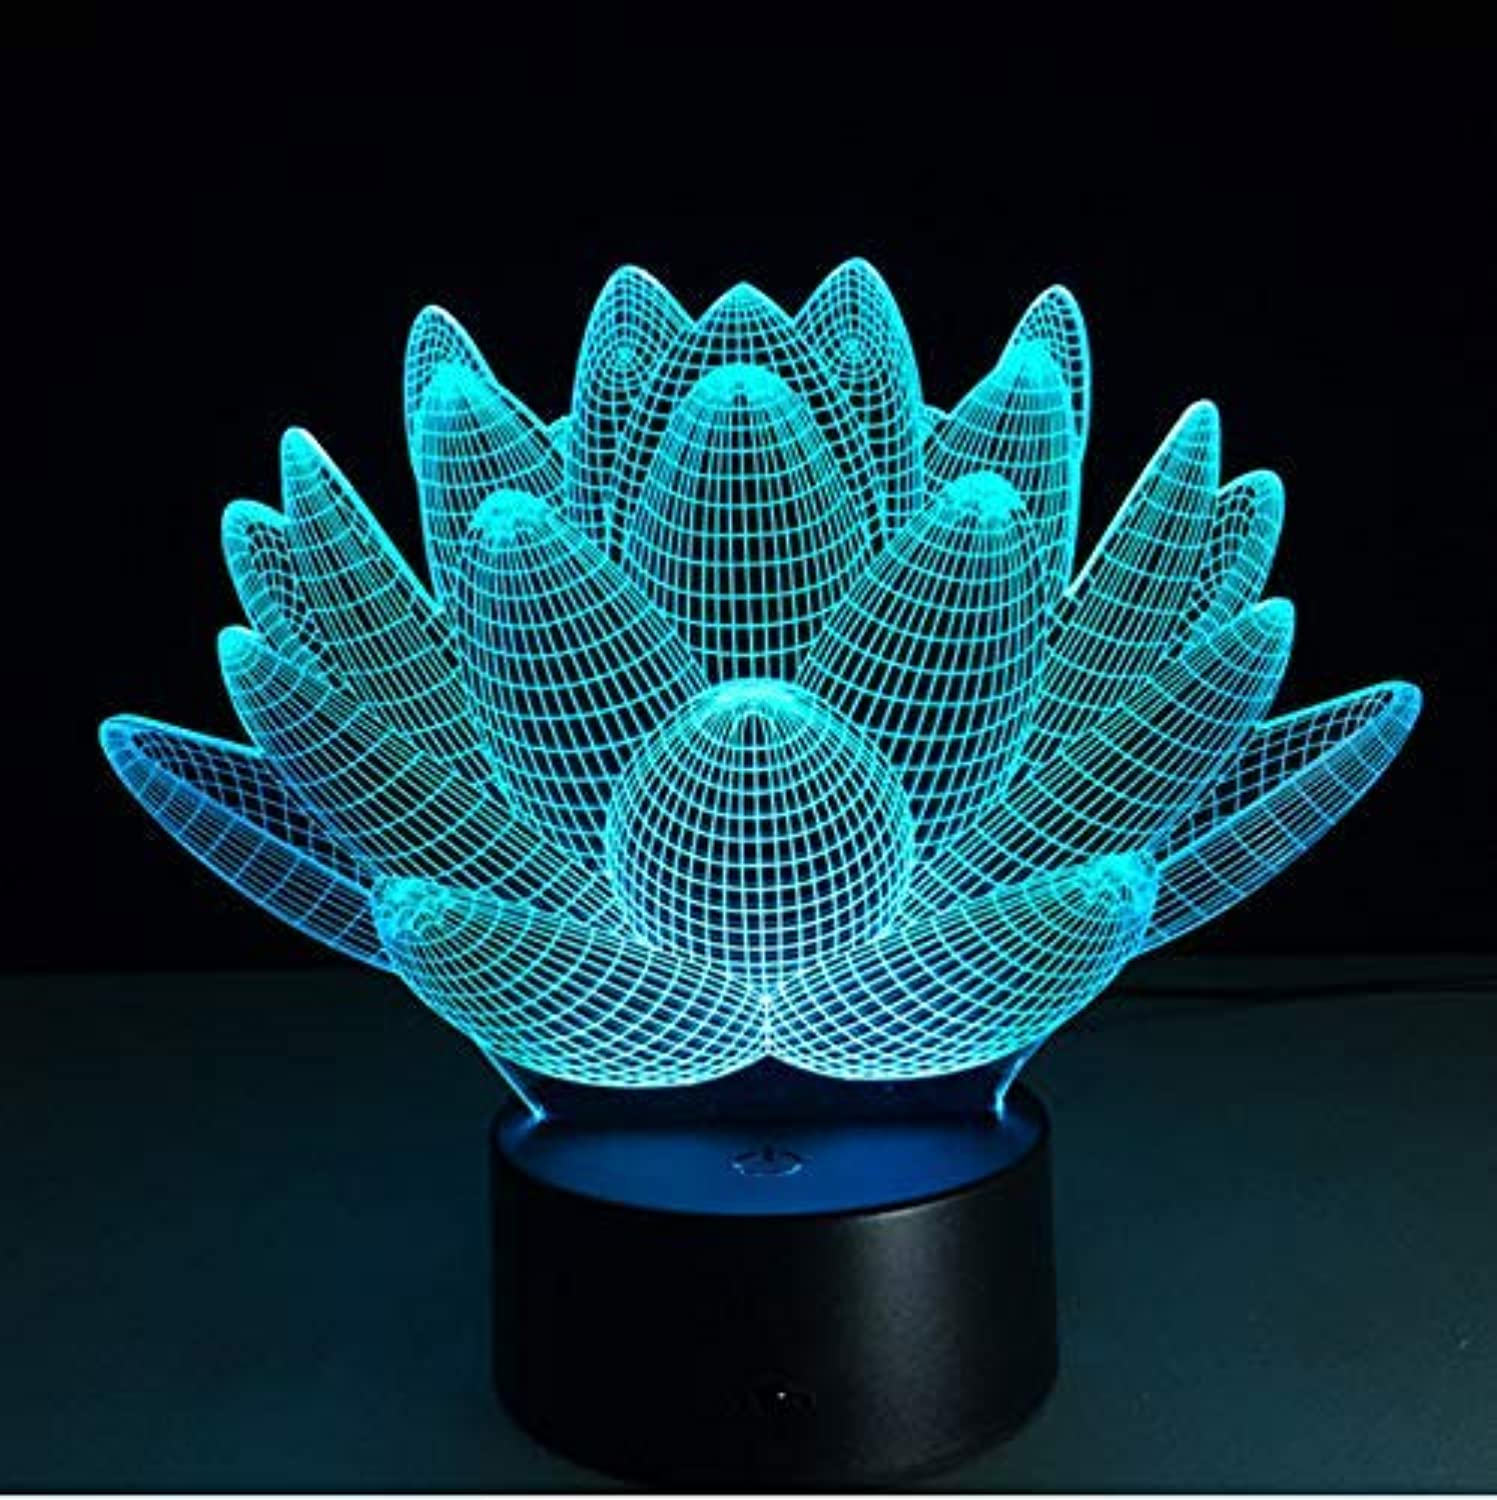 BMY Lotus Flora3D colorful Night Light 7 color Changing Table Lamp Remote Touch Stereoscopic Visual Illusion Lamp Decor Light